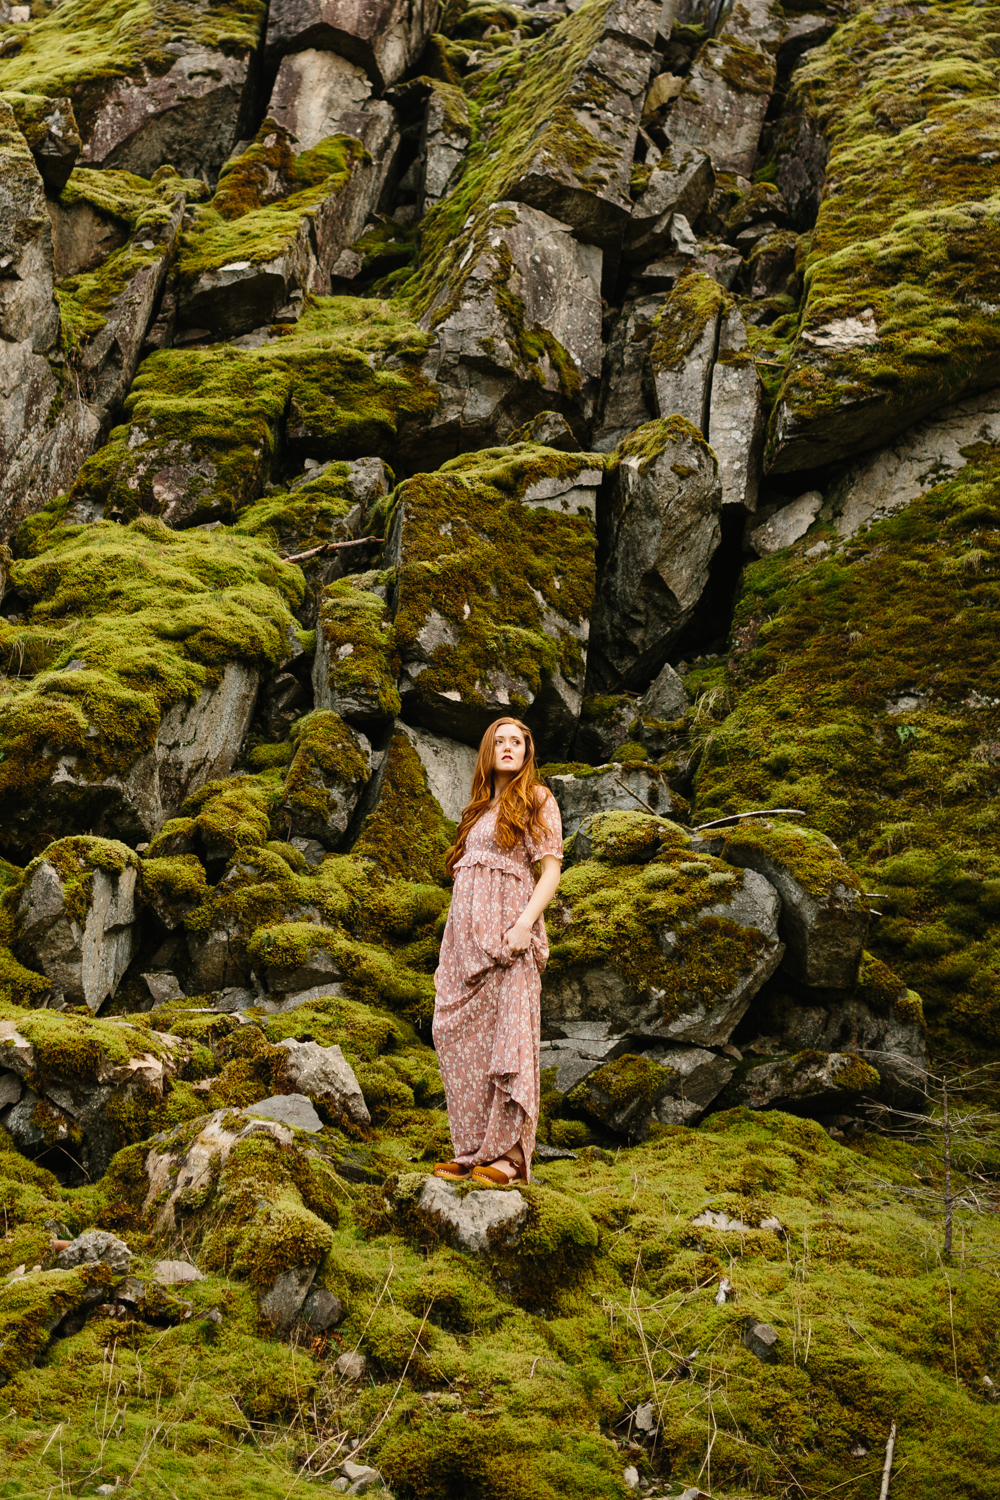 Portrait of a beautiful red-haired woman standing on mossy bould